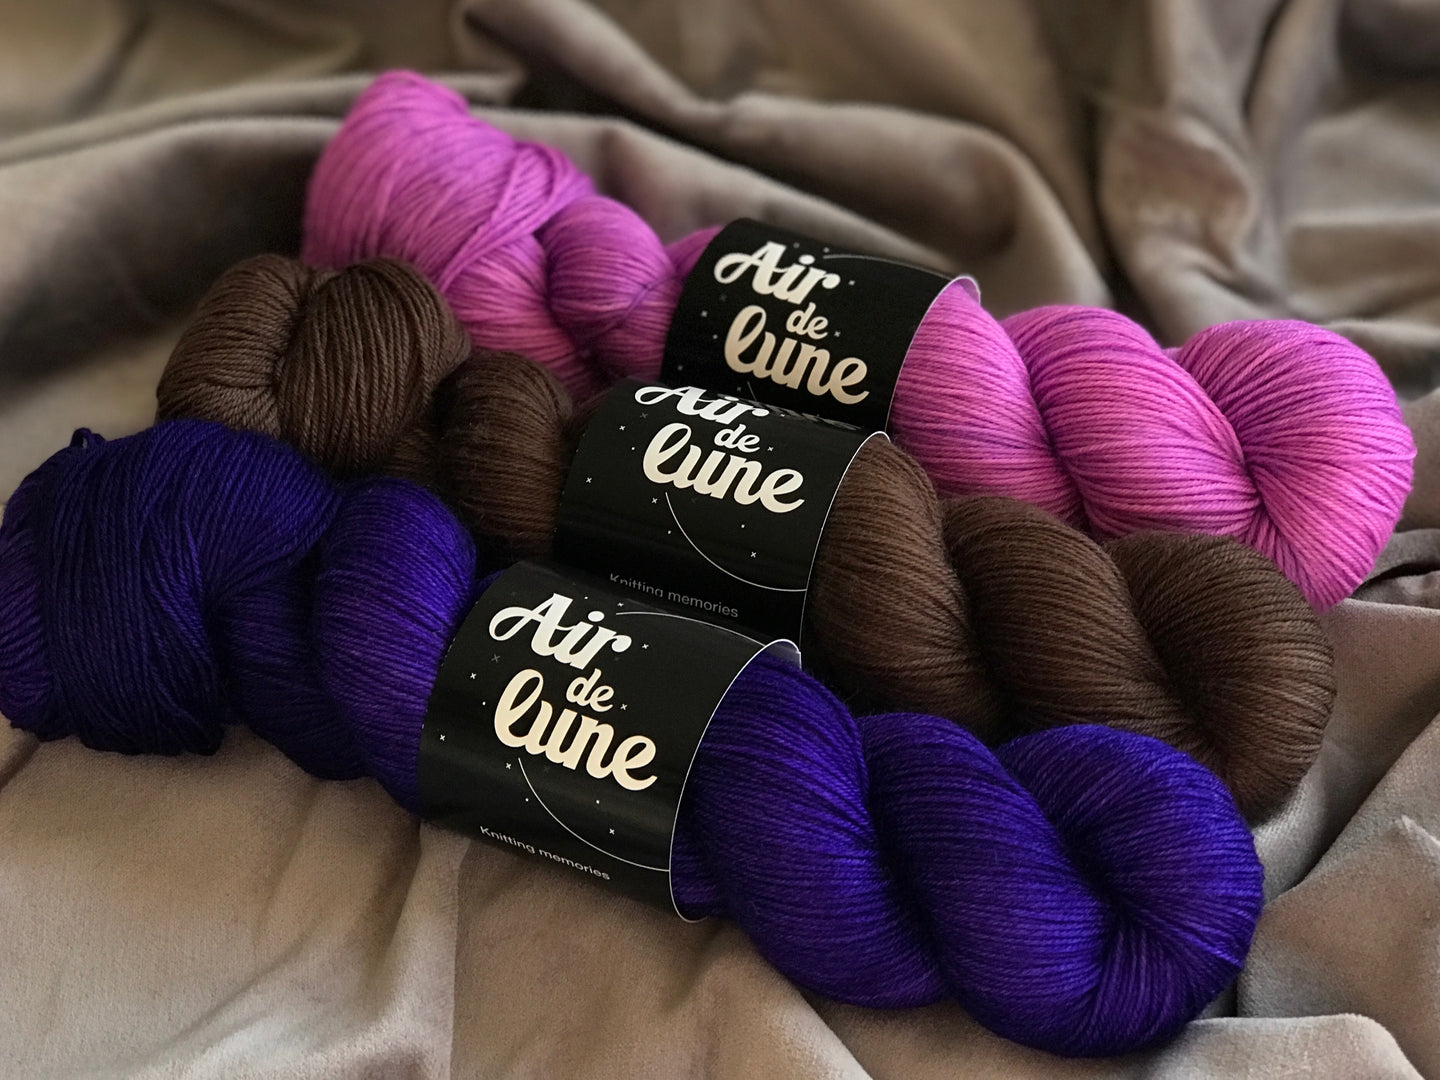 Ultra, chocolate, Viola. 3 skeins kit. (4326532874274)